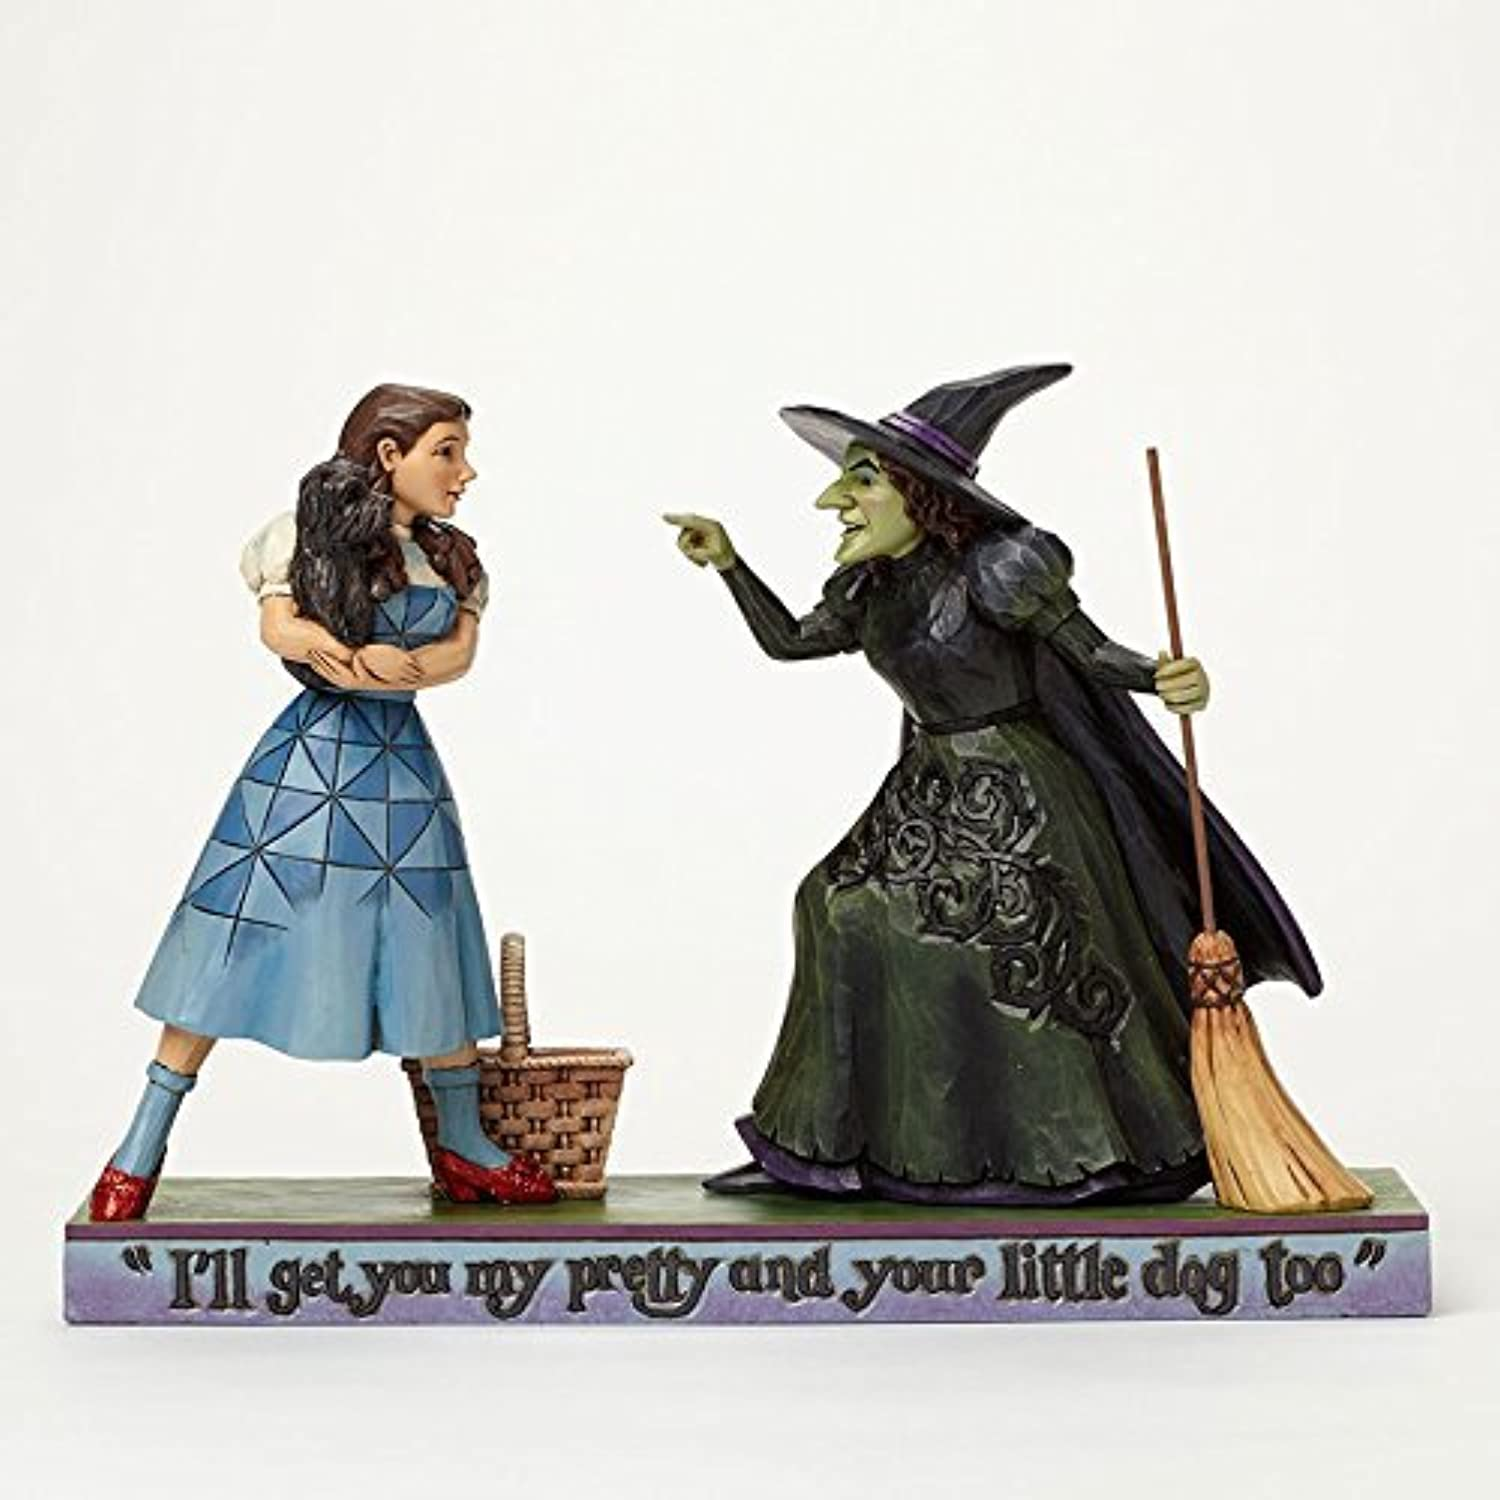 DGoldthy with Wicked Witch by Heartwood Creek